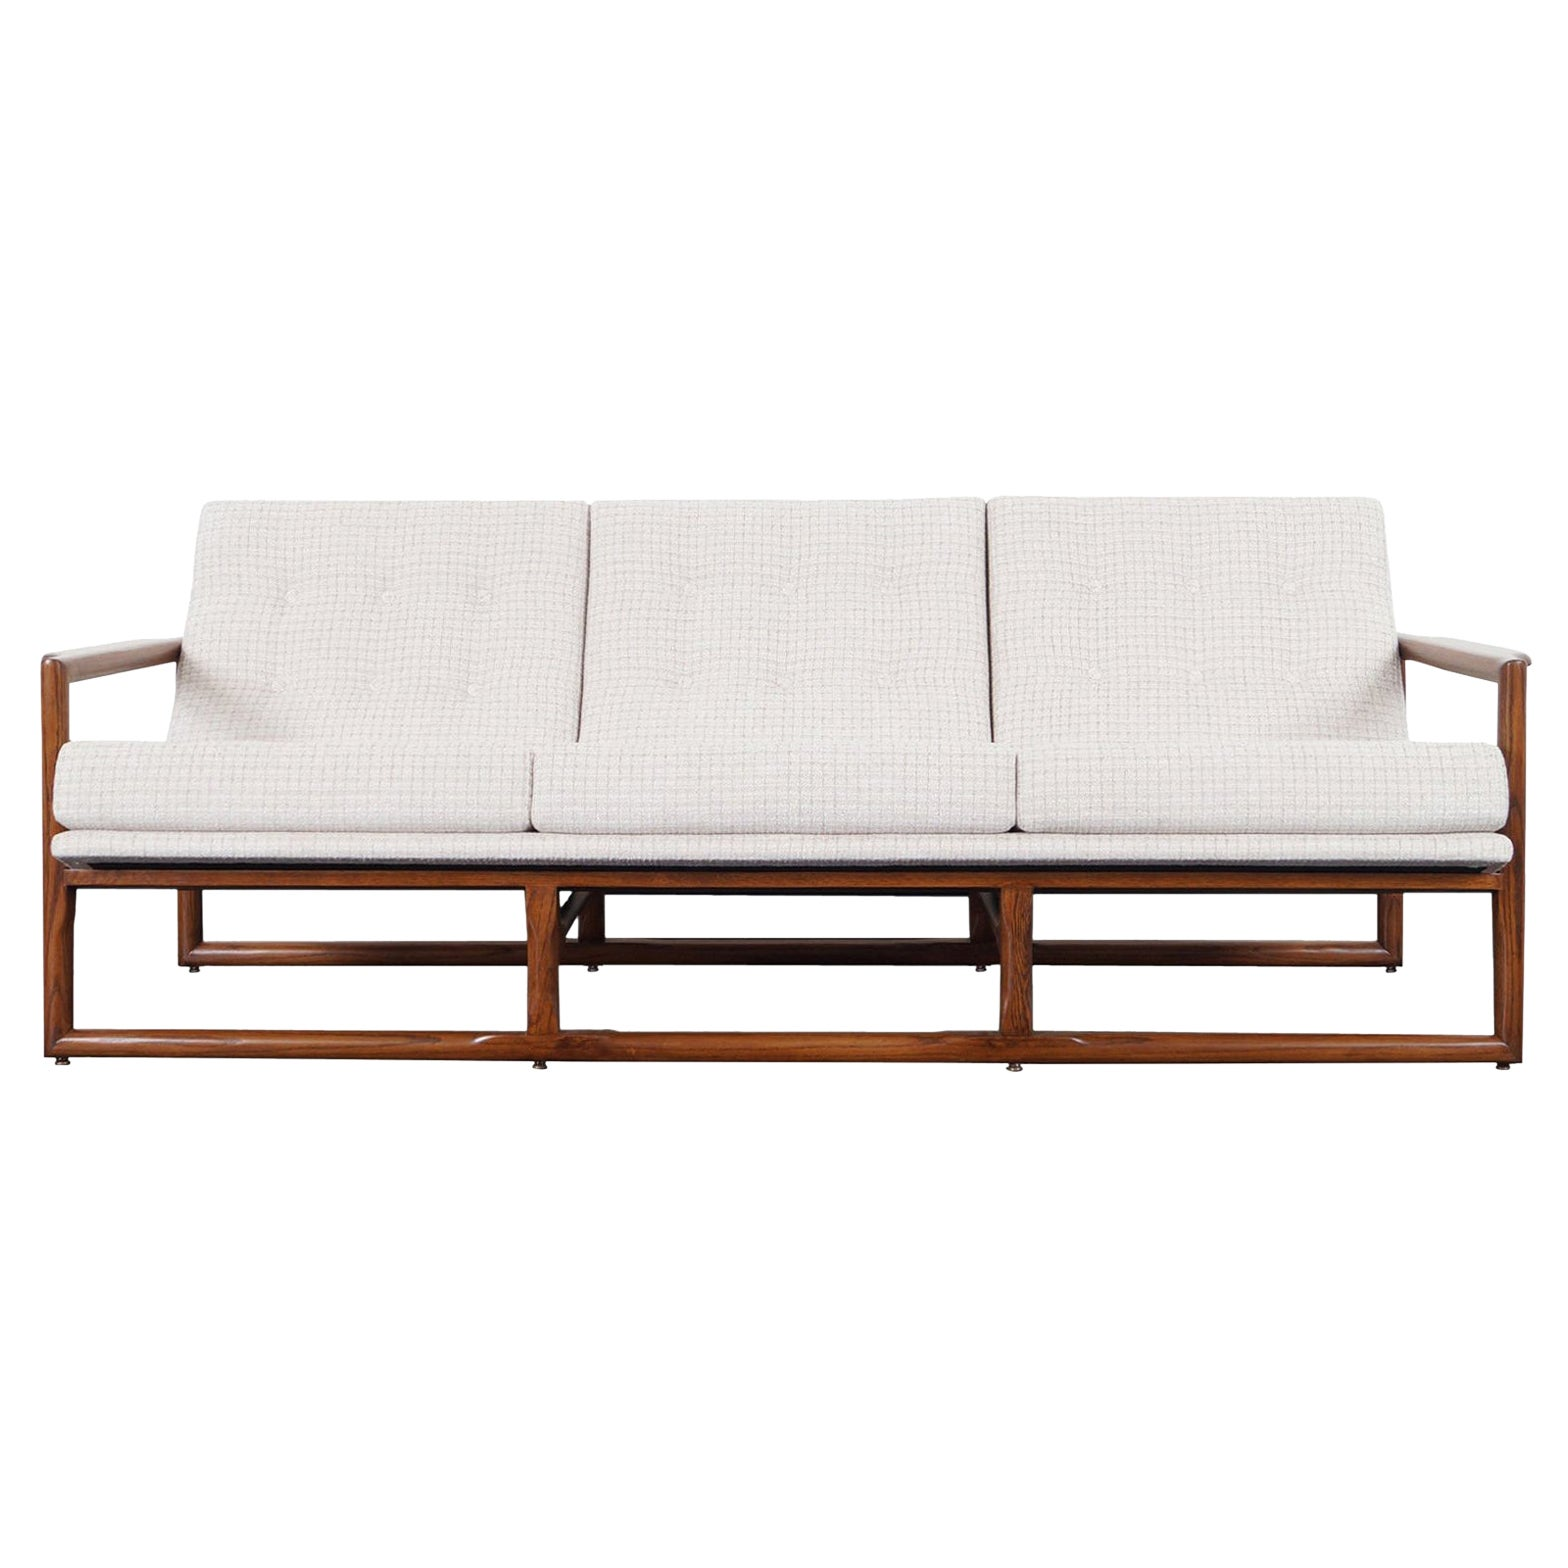 "Midcentury ""Cube"" Sofa Attributed to Milo Baughman"